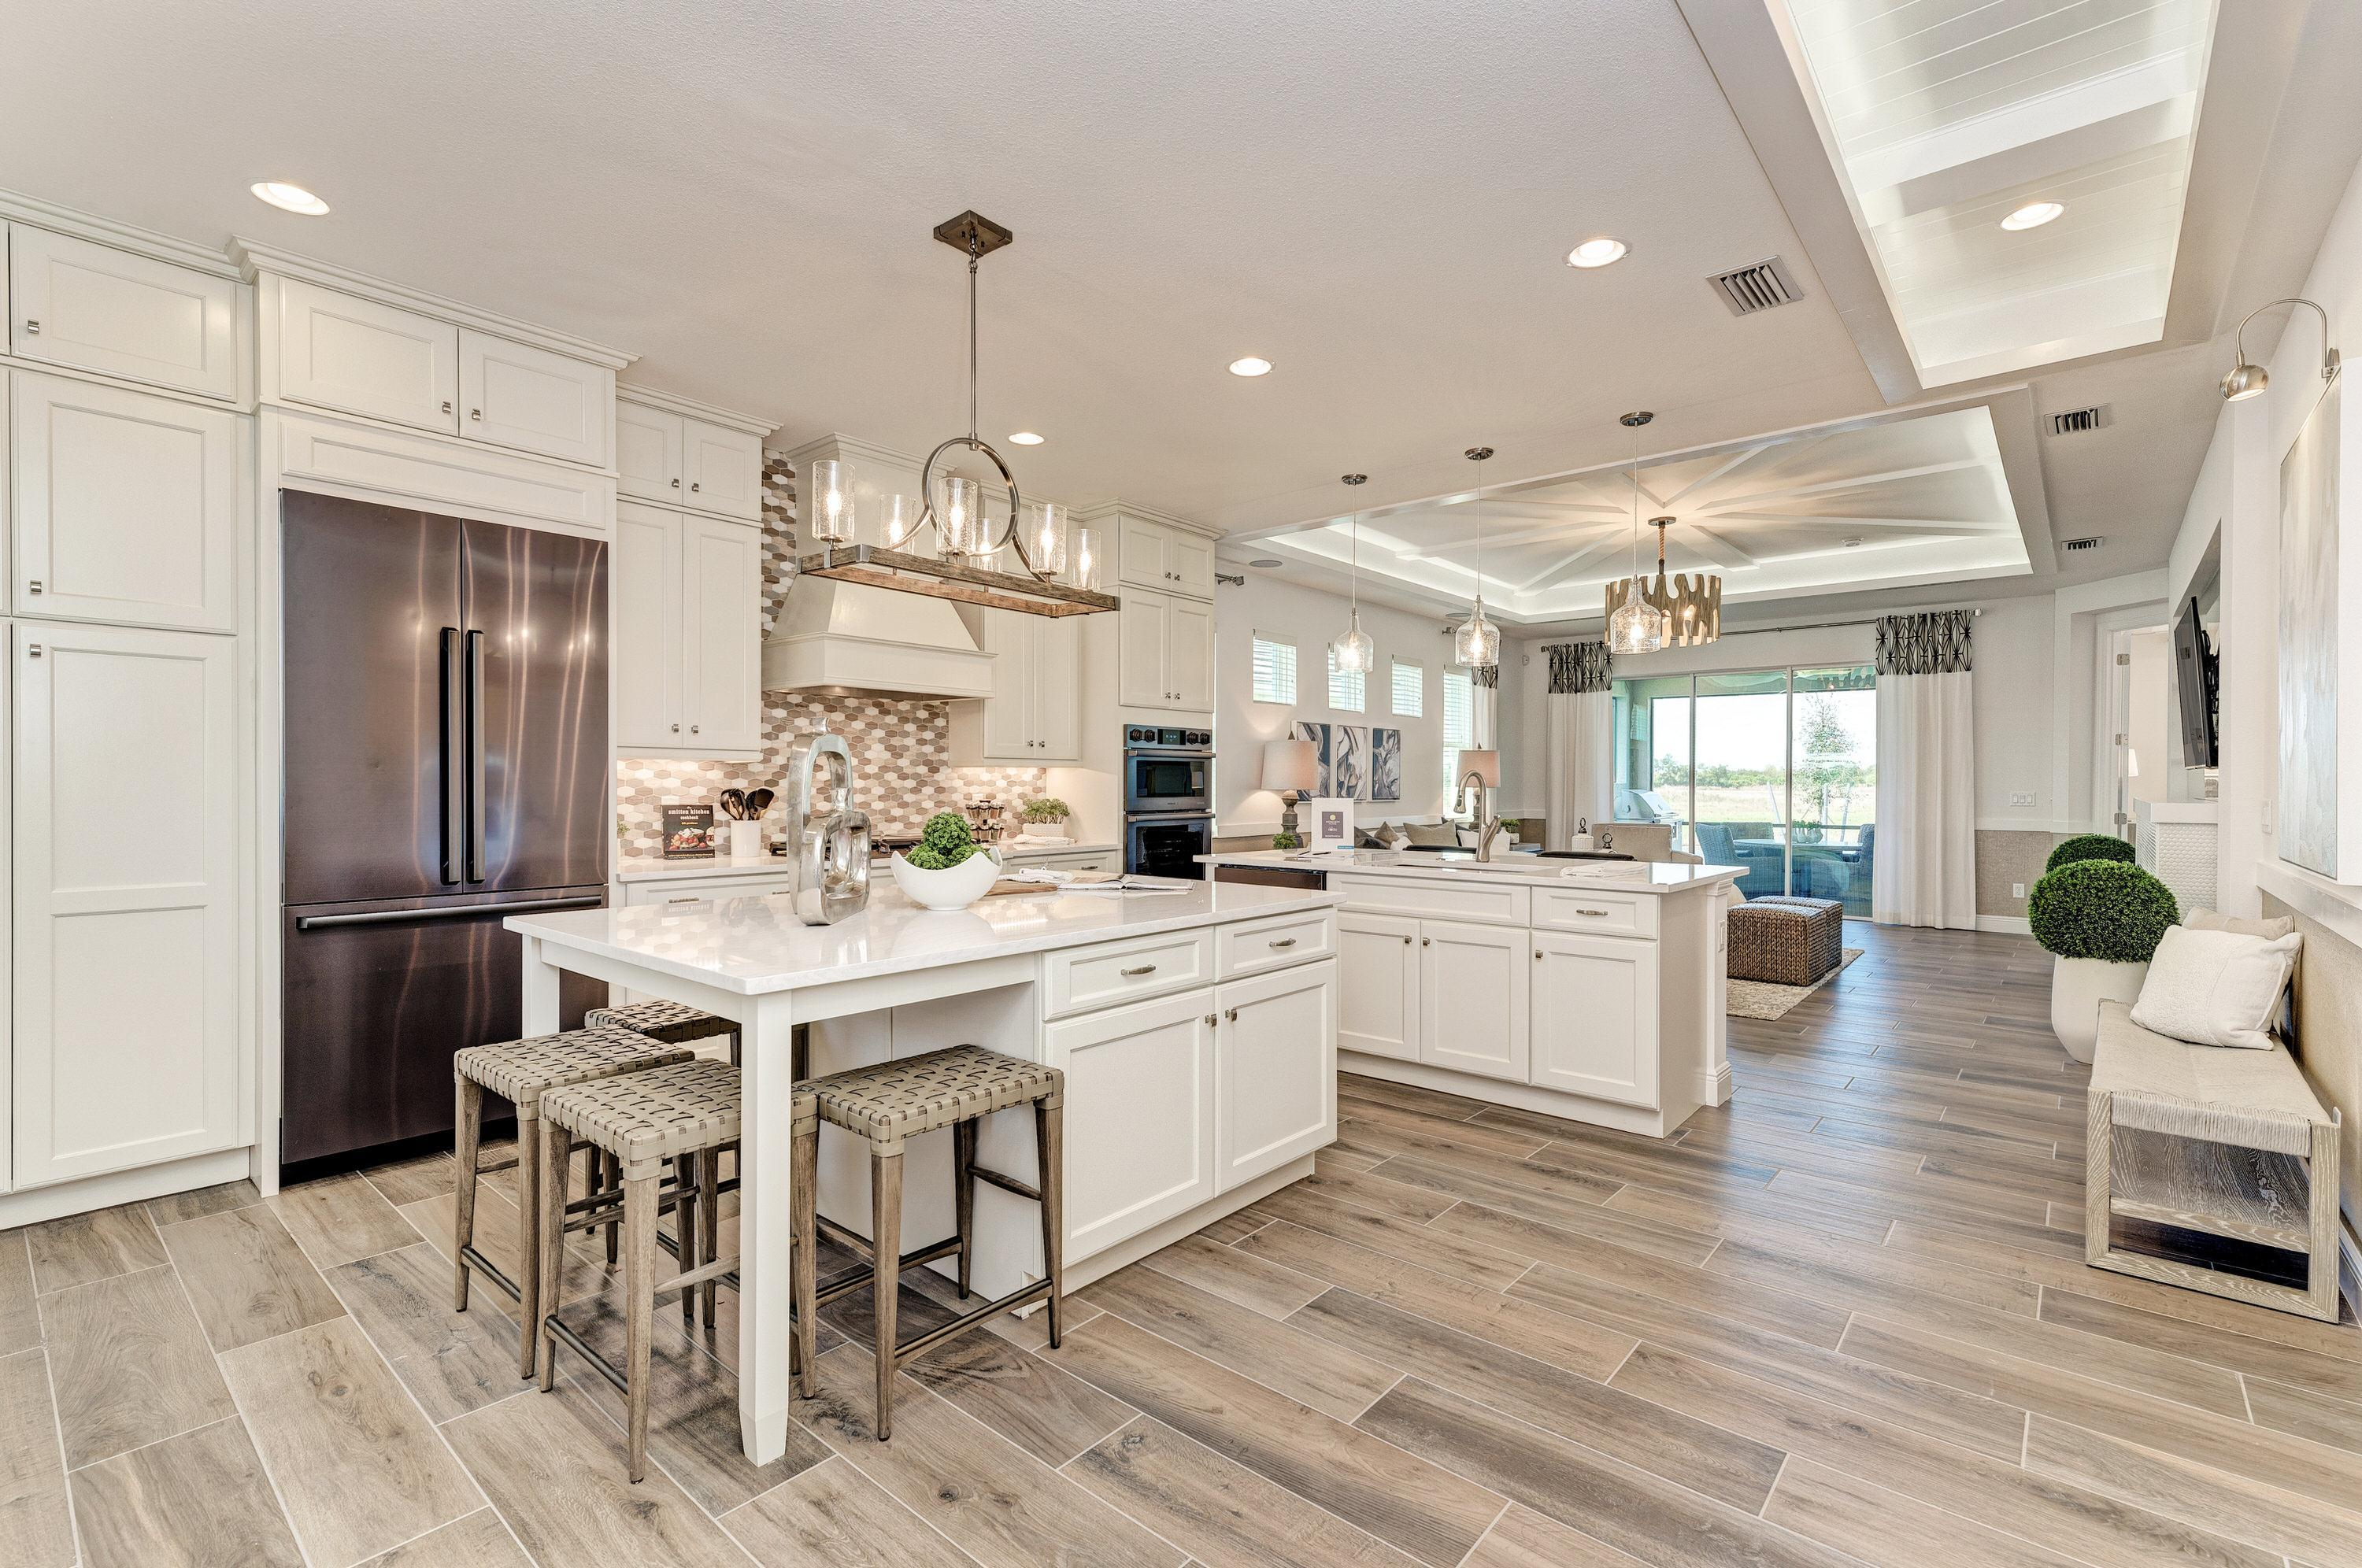 Kitchen featured in the Paradise Villa Home By Medallion Home in Sarasota-Bradenton, FL